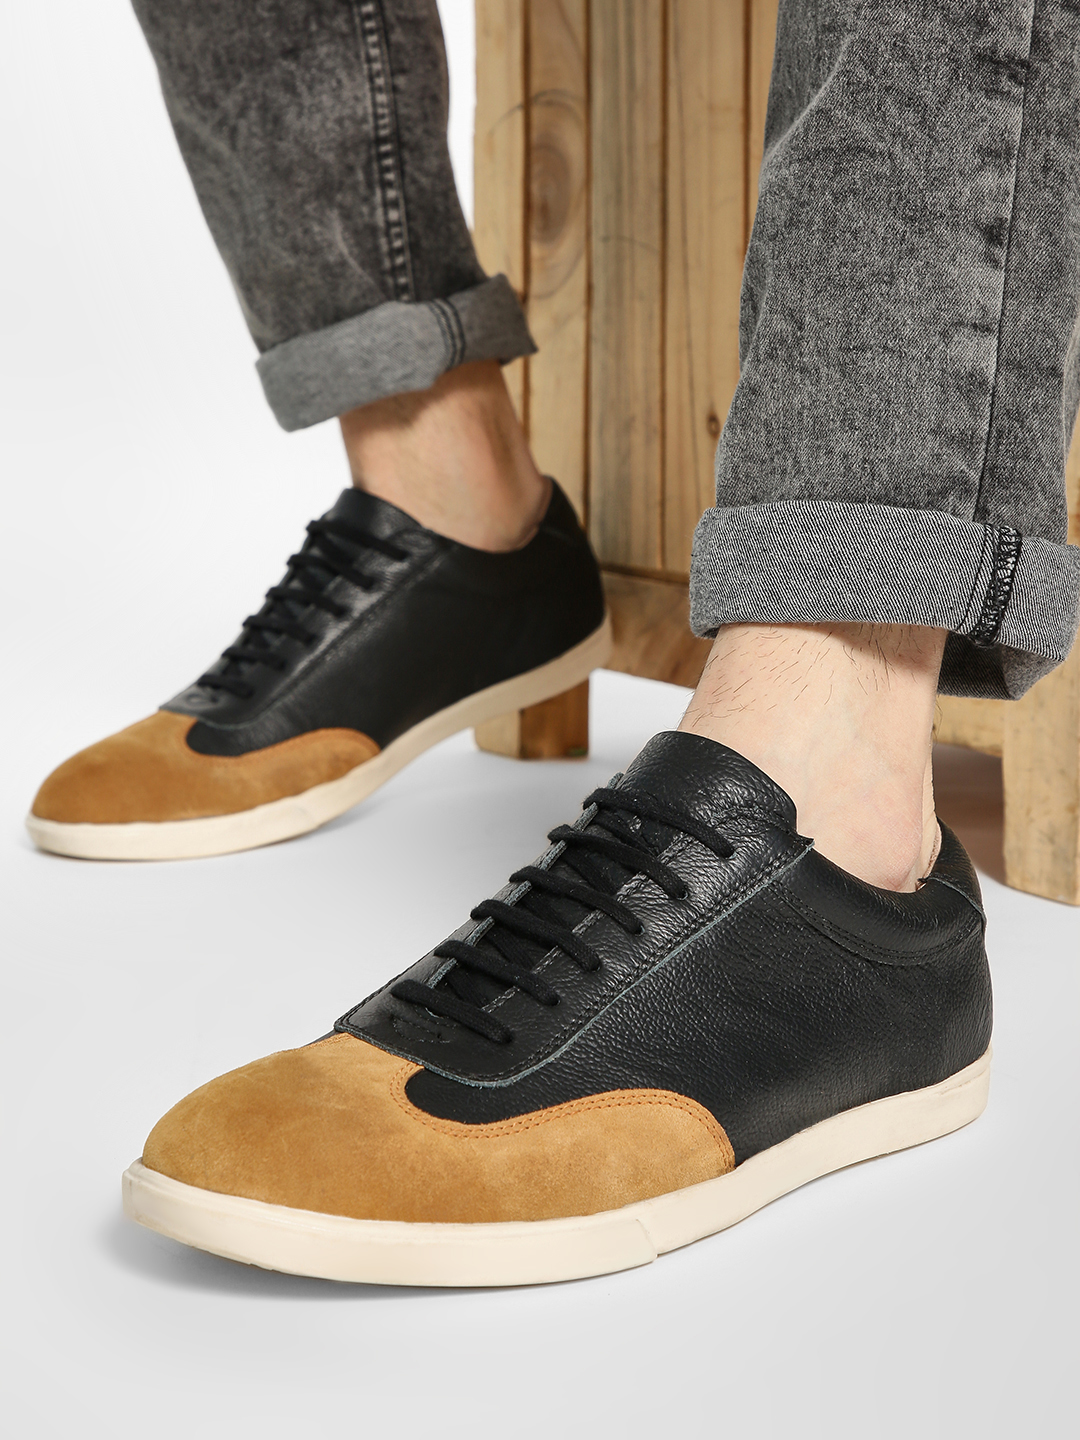 YOHO Black Suede Panel Leather Sneakers 1